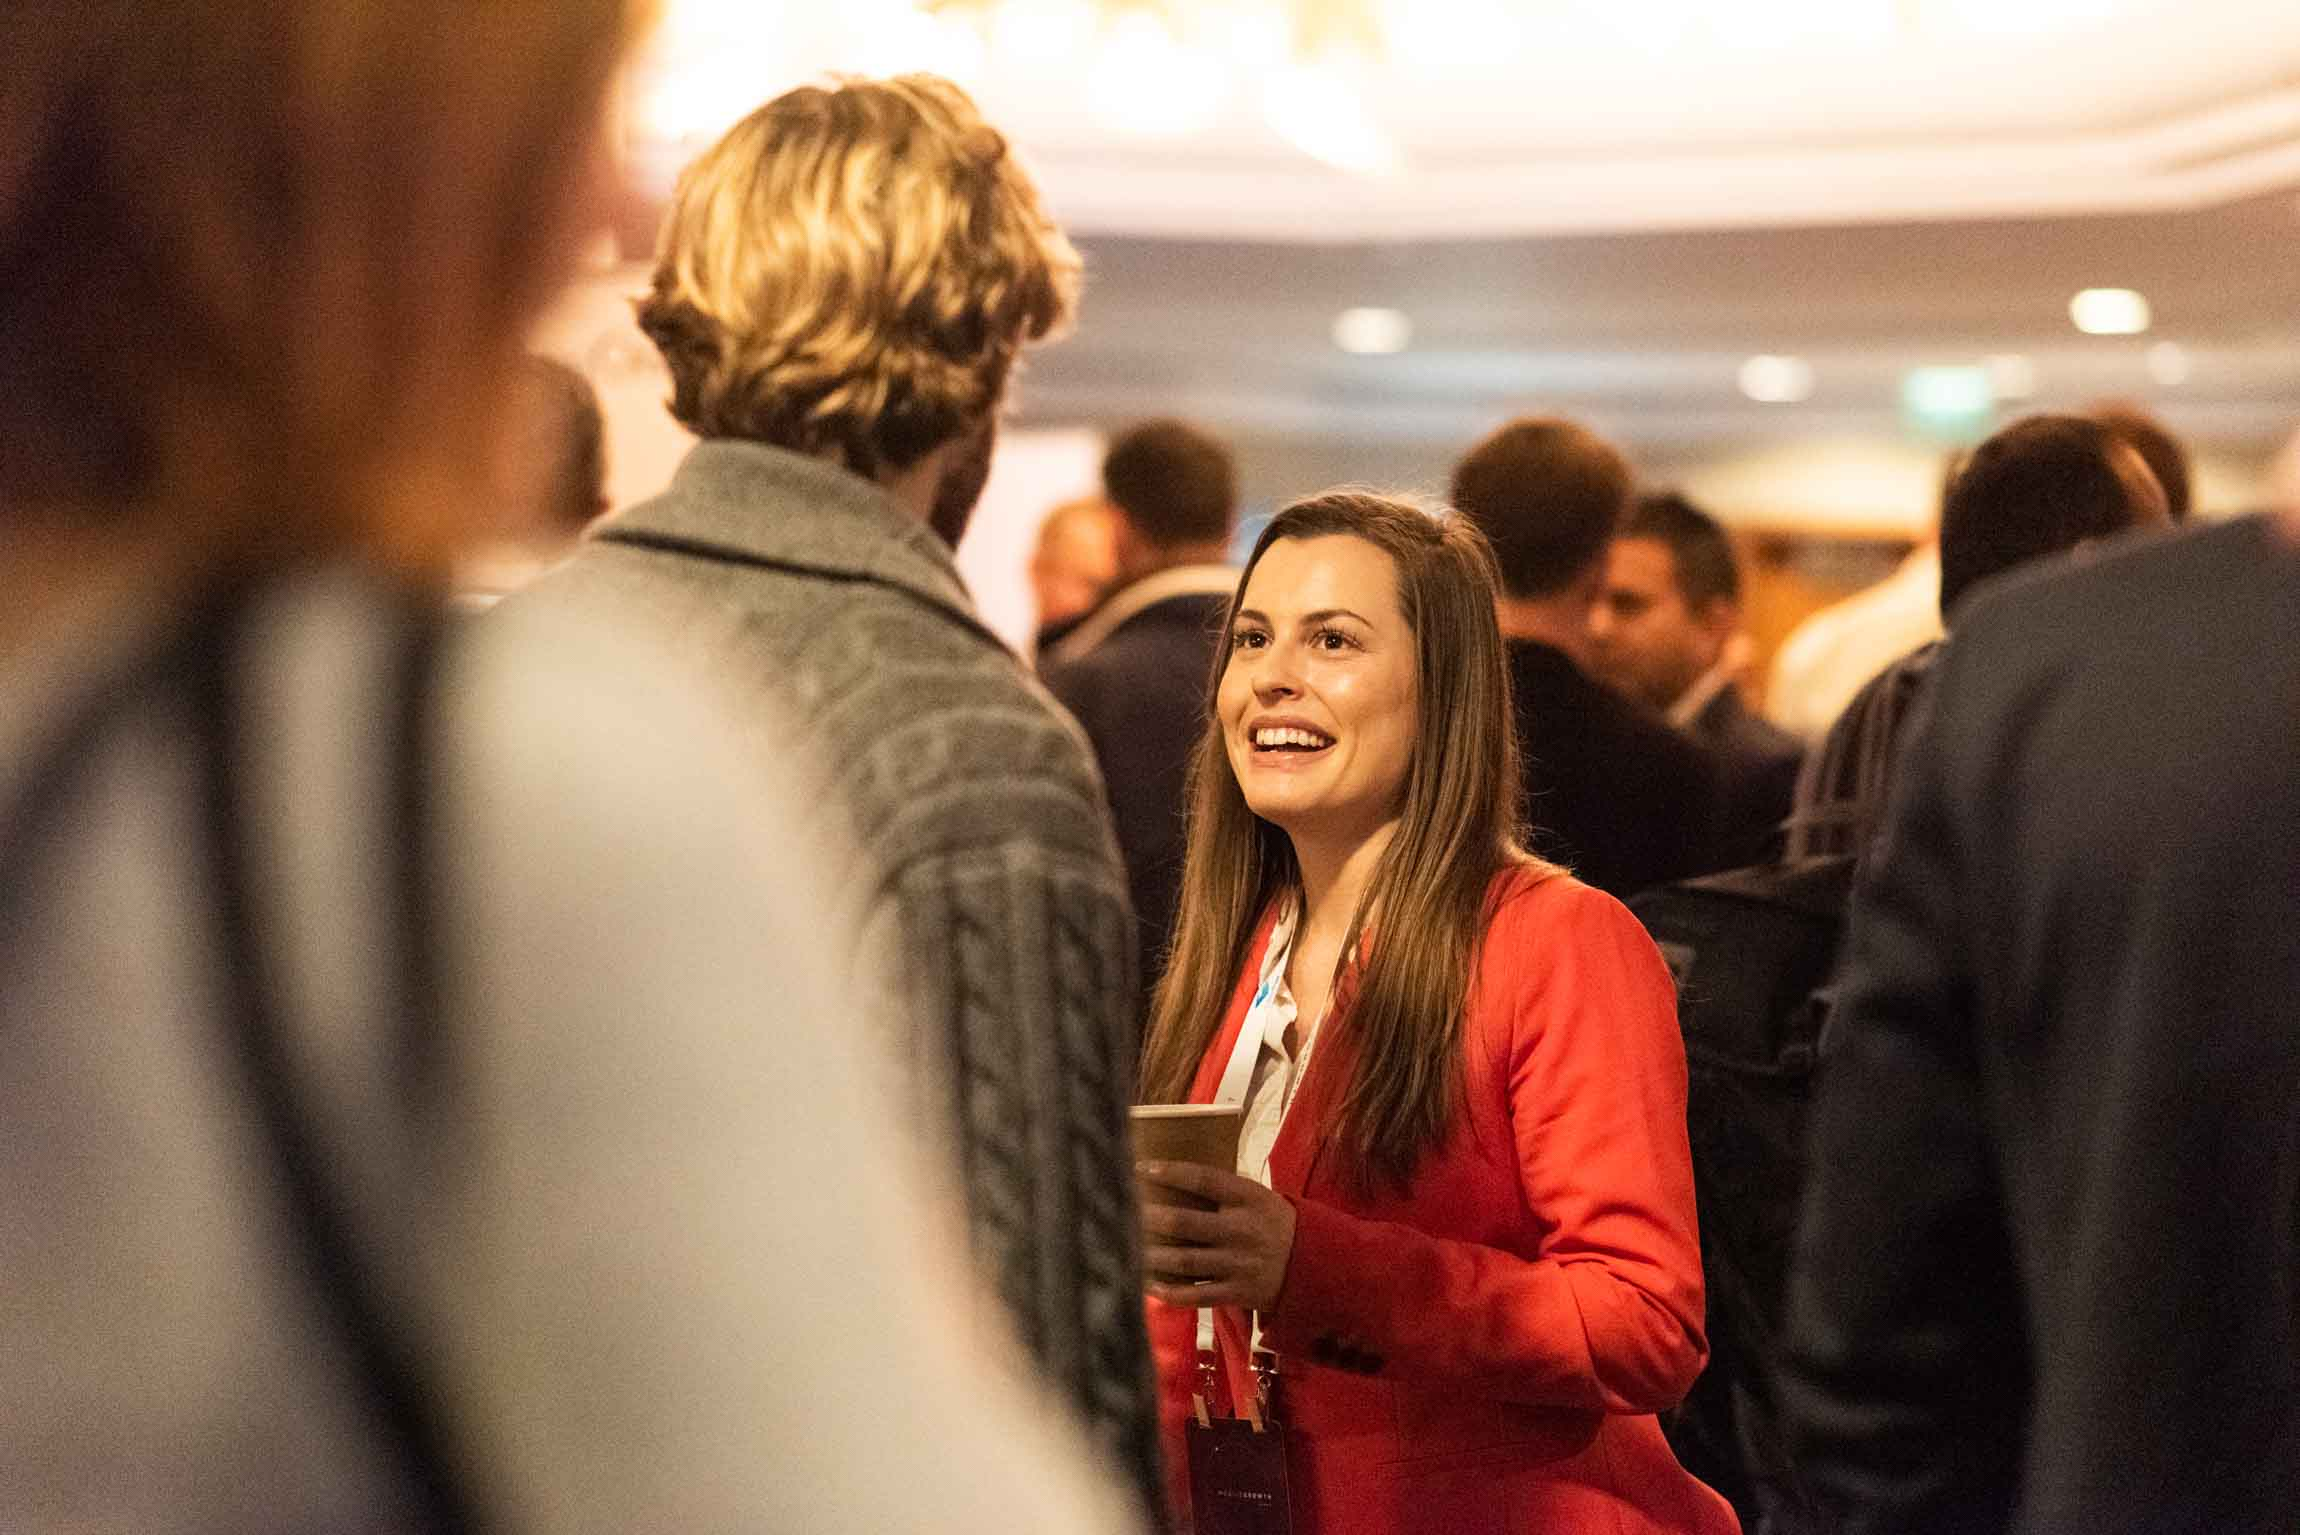 034_mgs2019_sanfrancisco_conference_photography_event.jpg